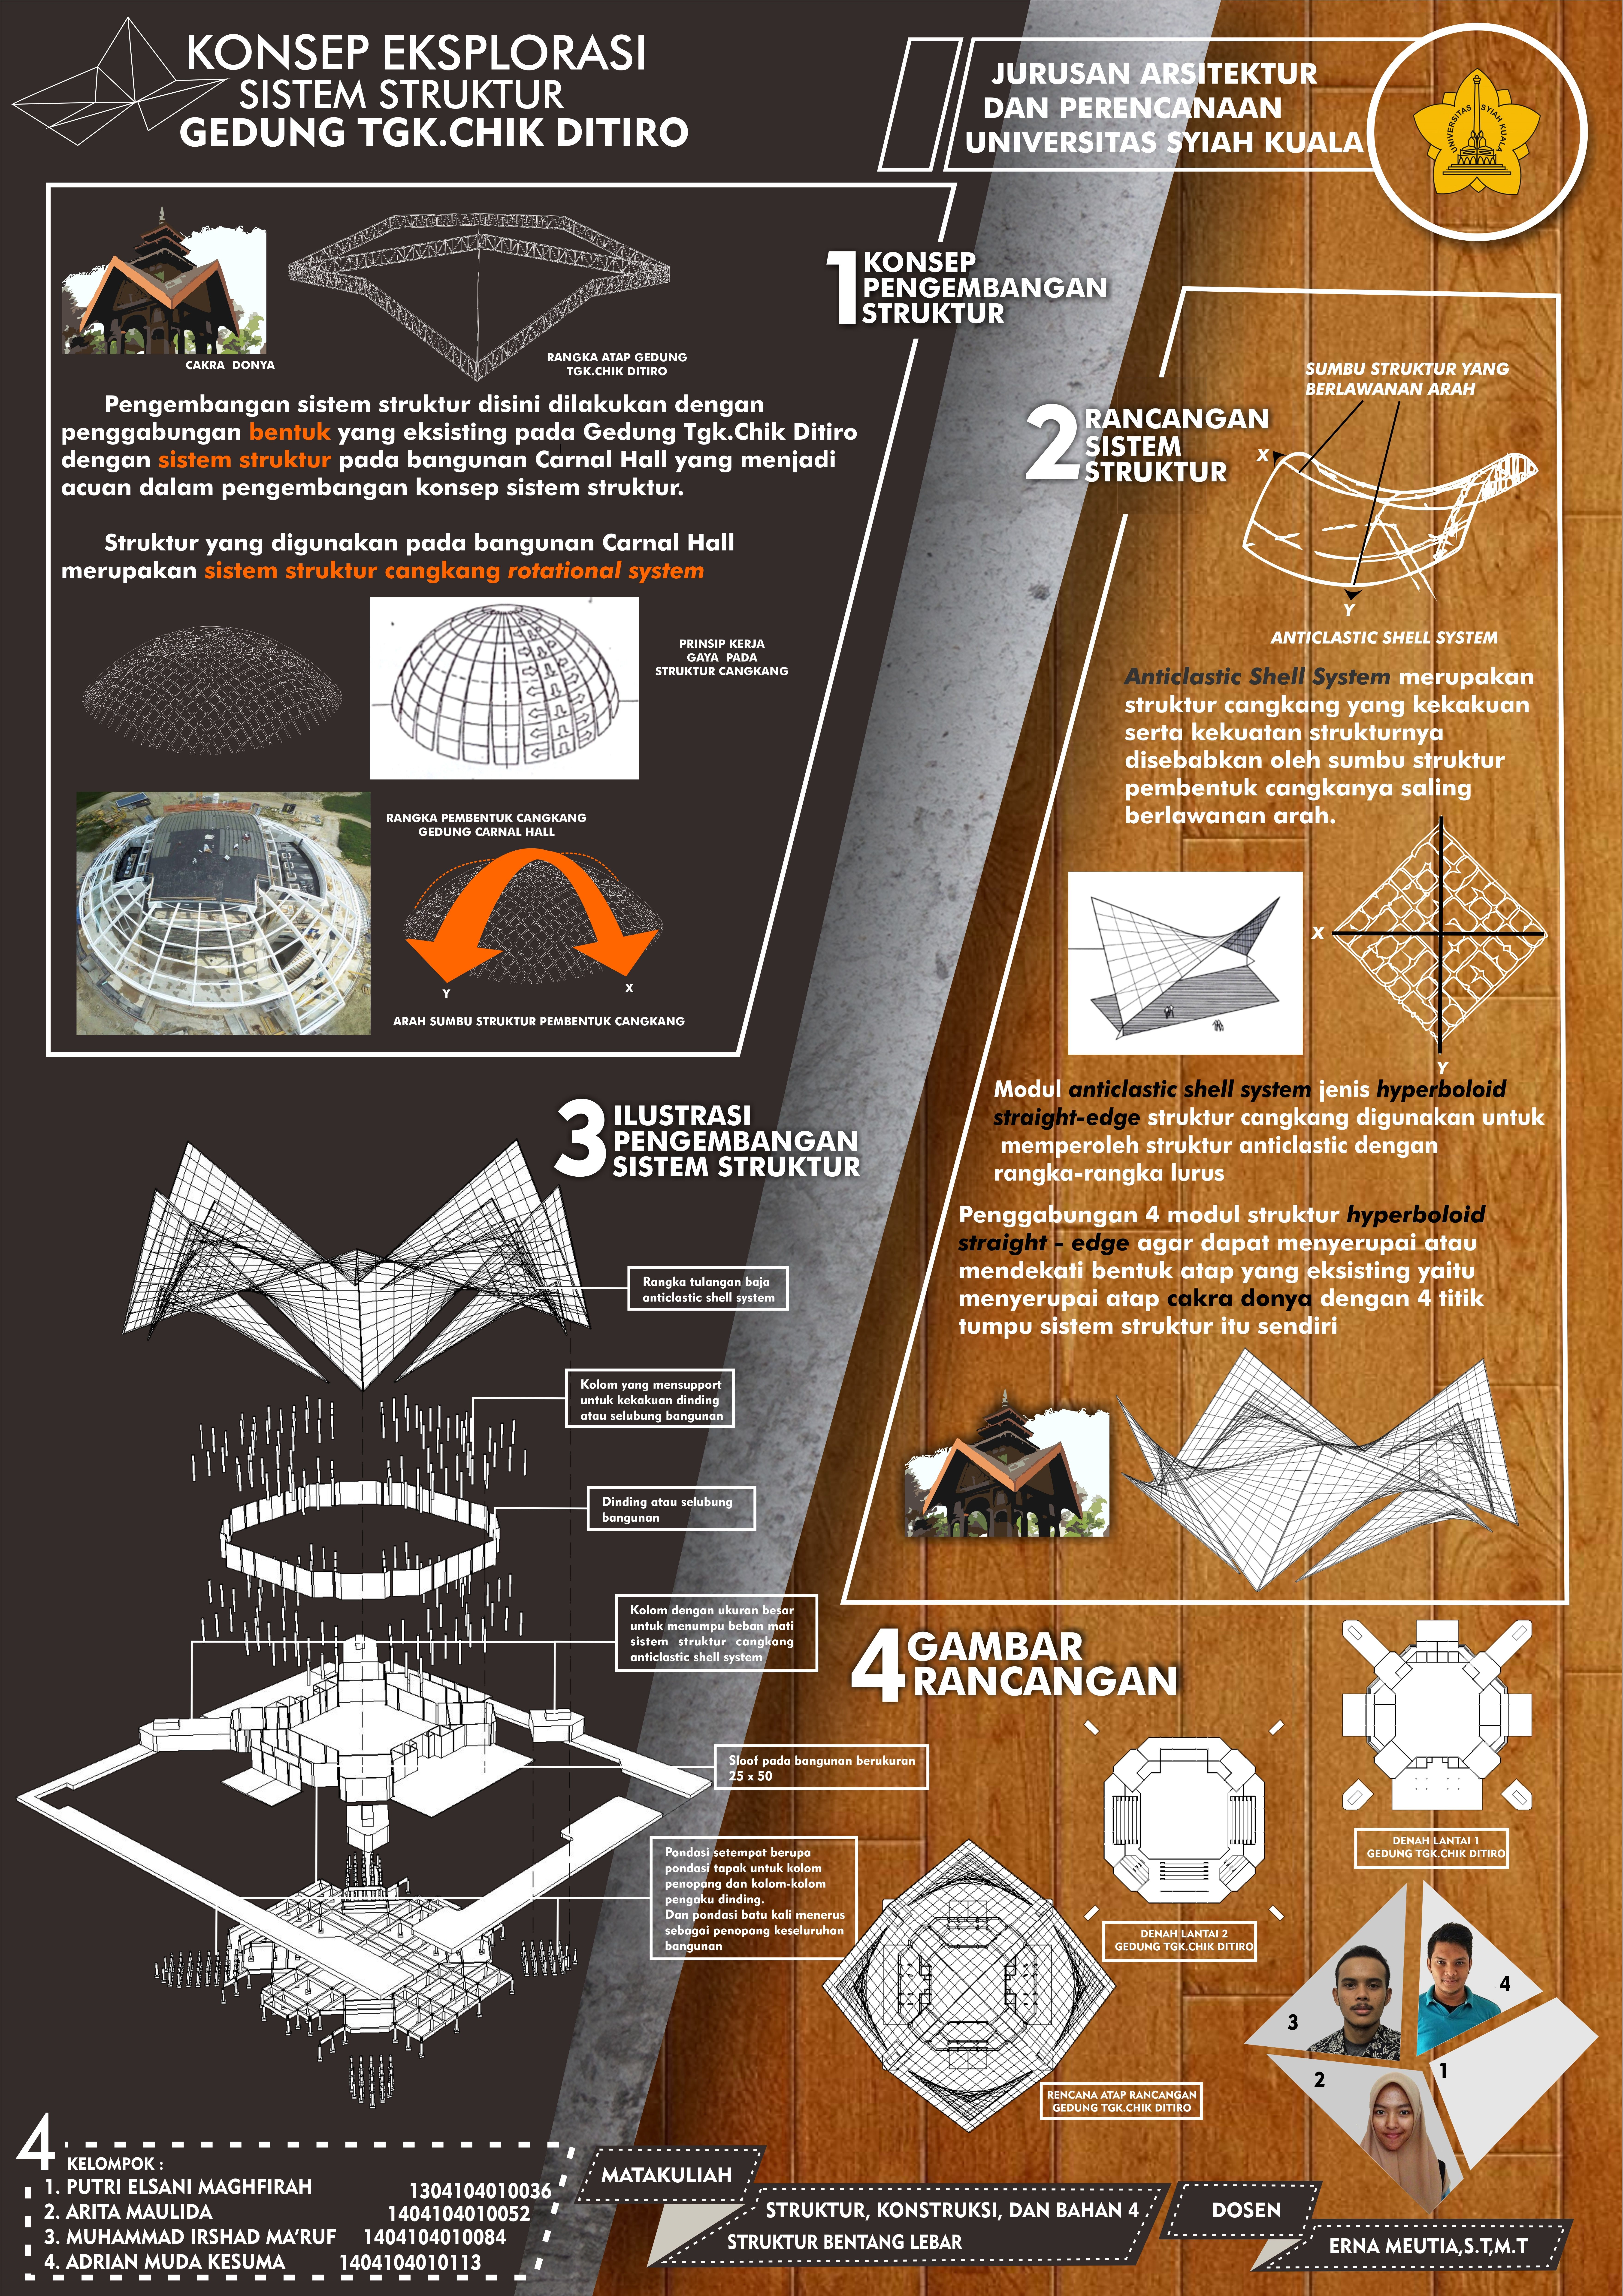 Hyperbolic Paraboloid Structure Anti Clastic Shell System Syiah